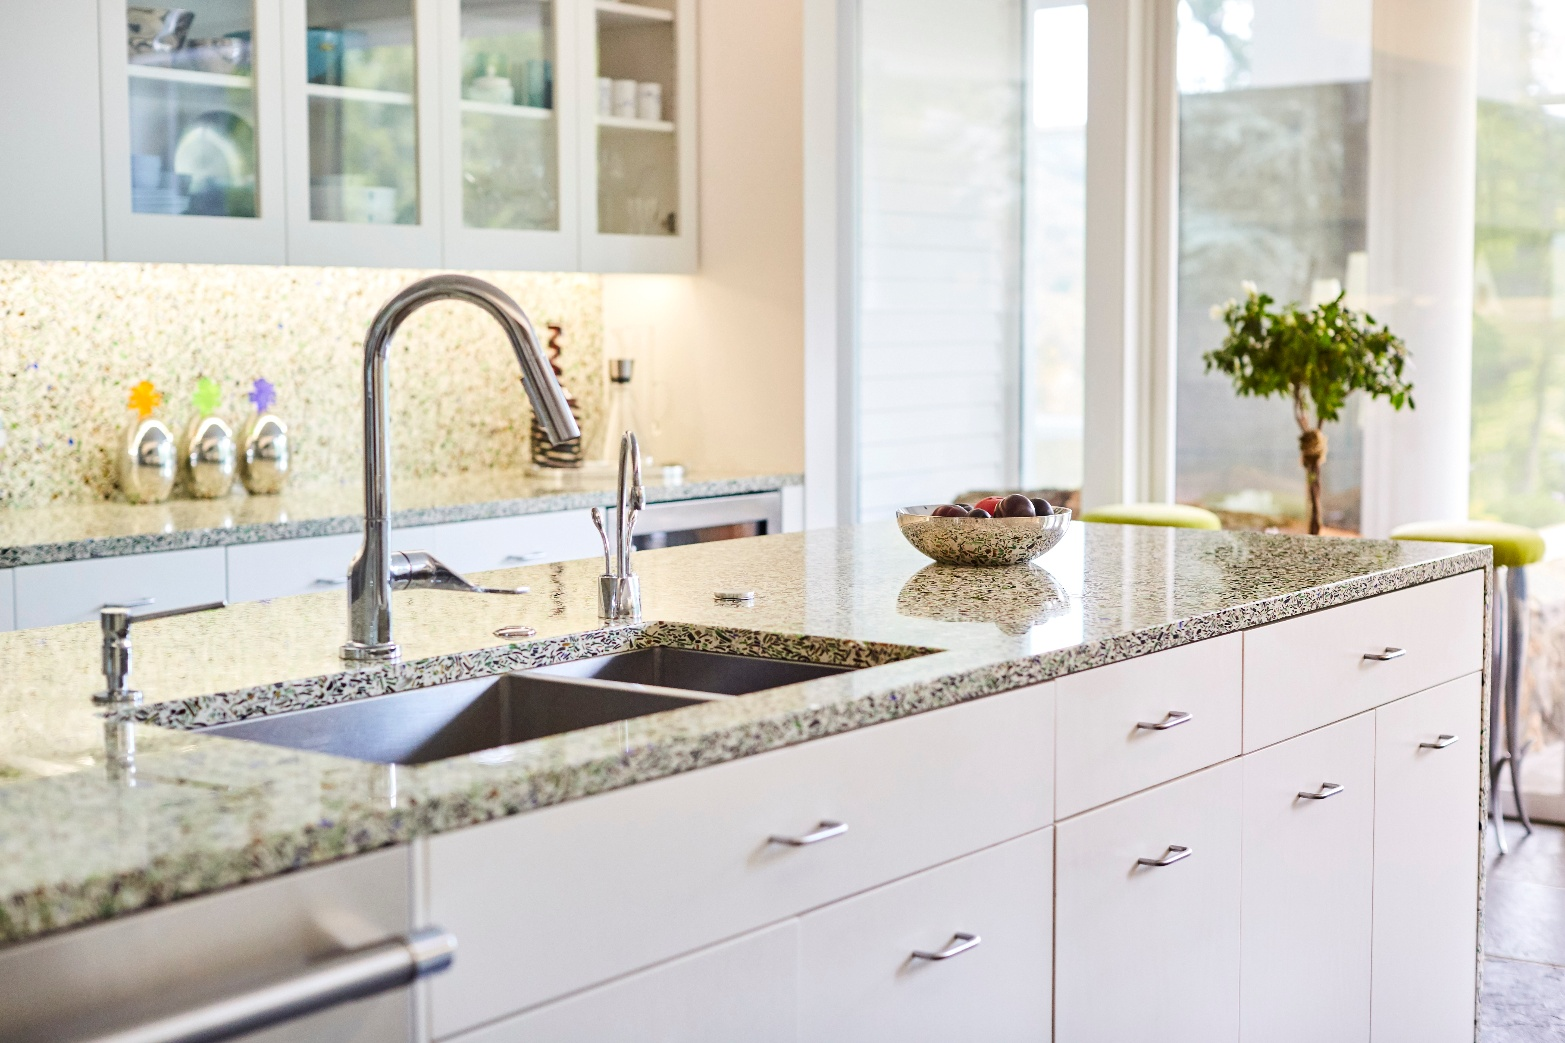 retro-modern-kitchen-design-recycled-glass-countertops